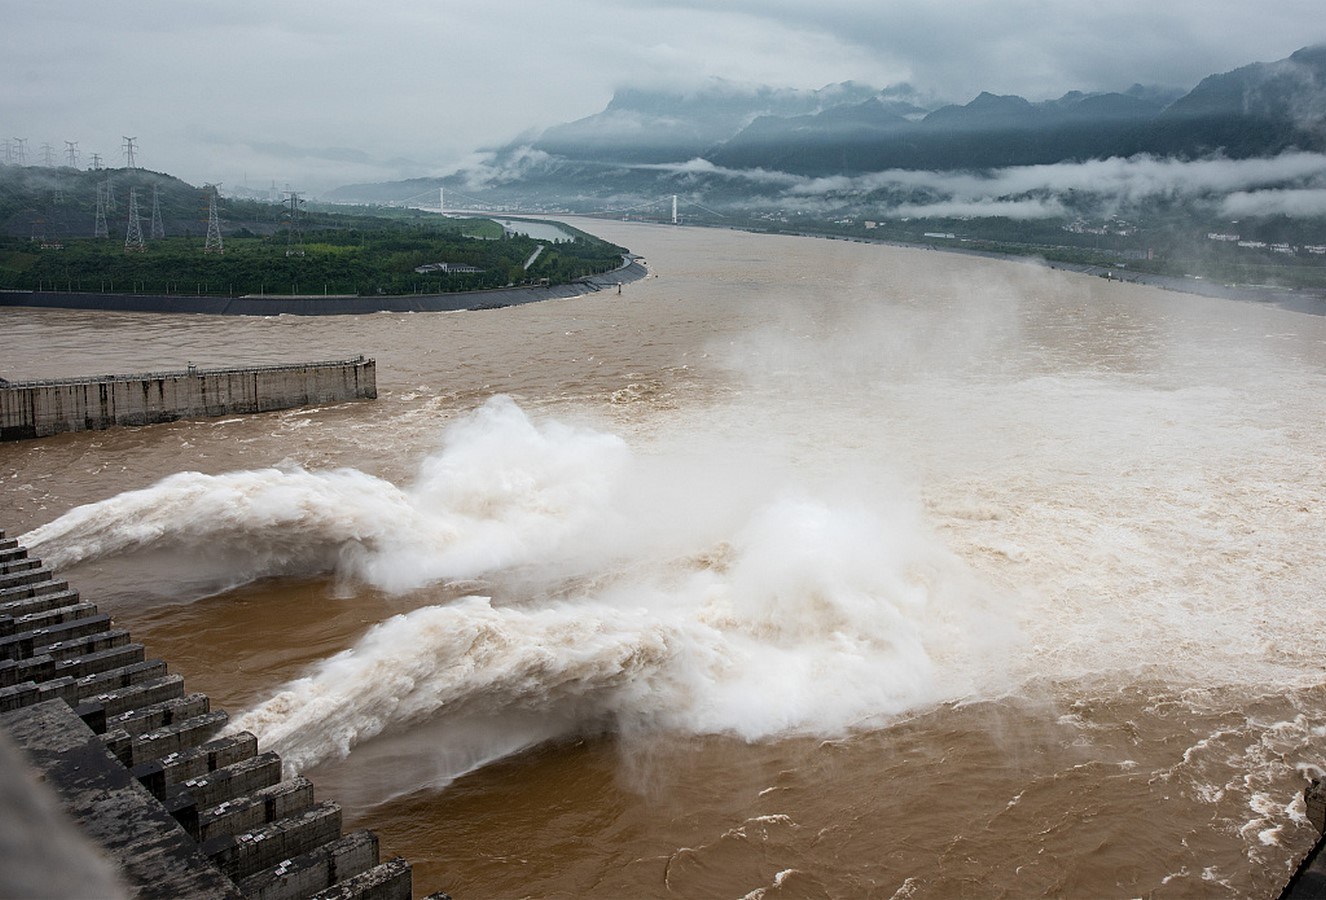 Three Gorges Dam by Pan Jiazheng- The world's Largest hydroelectric dam - Sheet19